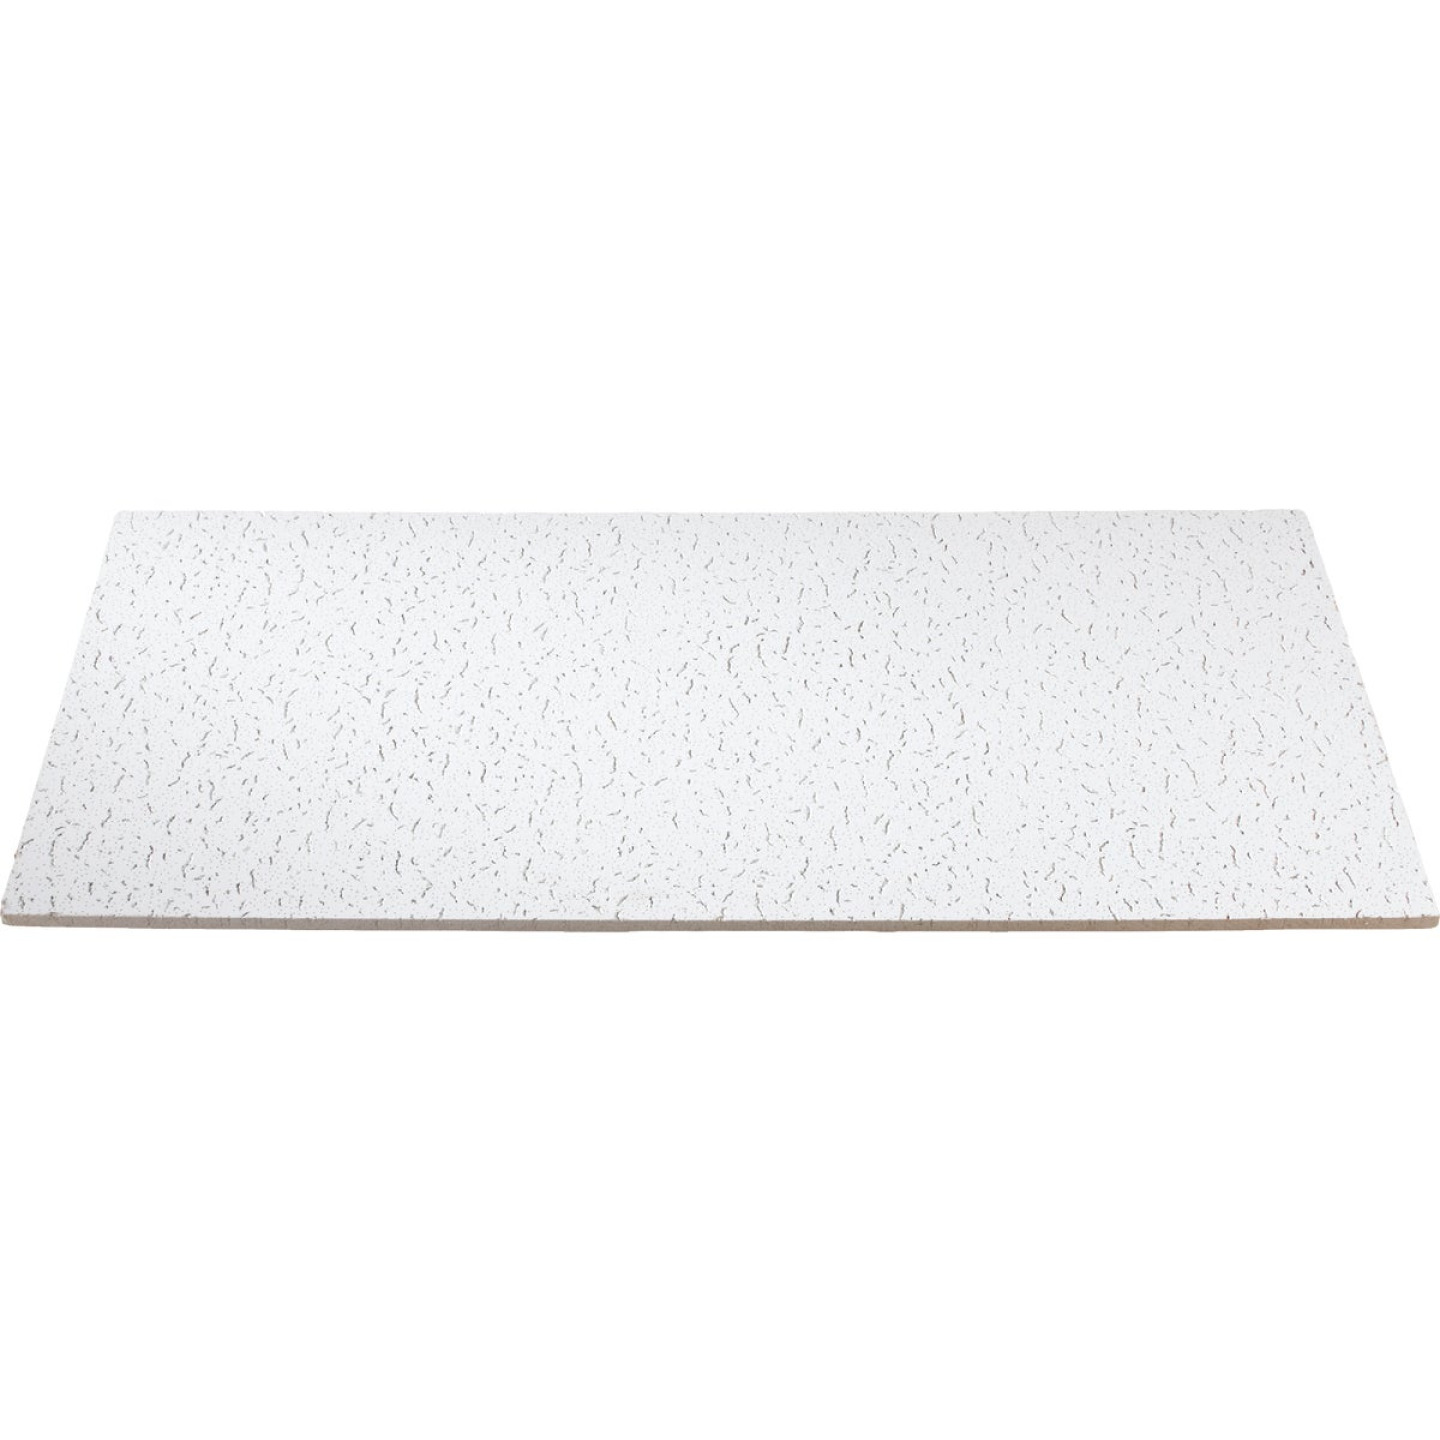 Fifth Avenue 2 Ft. x 4 Ft. White Mineral Fiber Square Edge Ceiling Tile (8-Count) Image 5